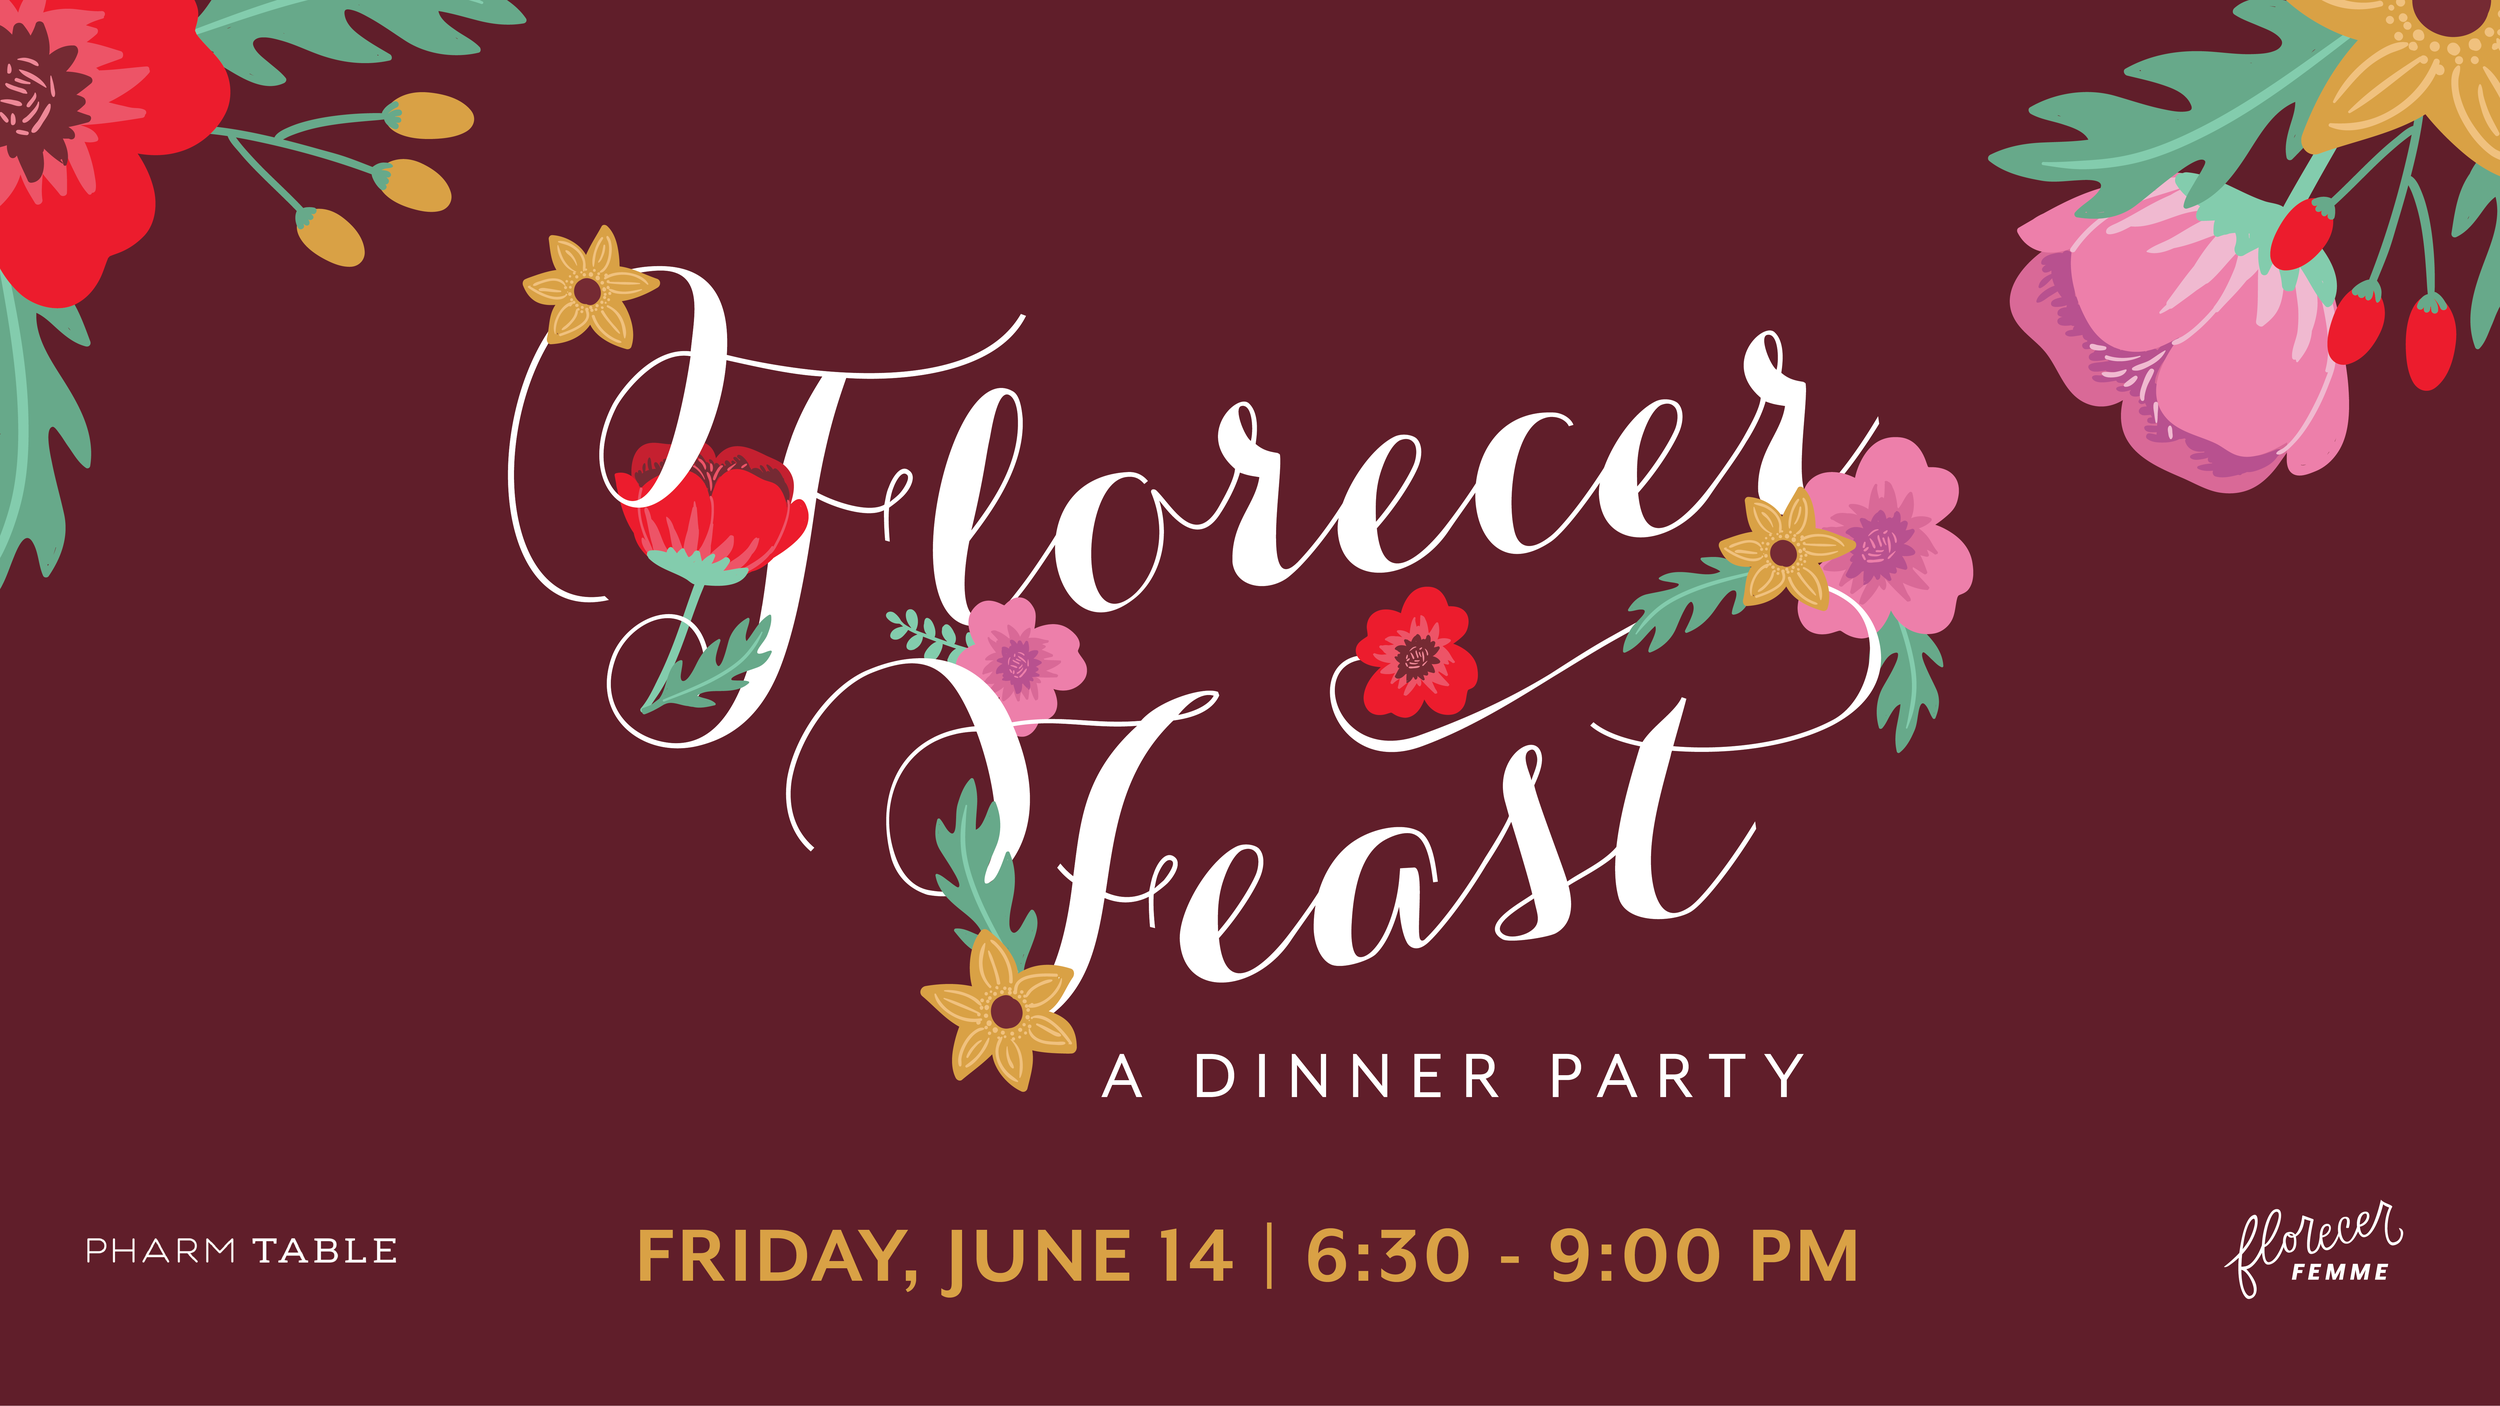 FF_061419_FlorecerFeast_fbook-event_cover.png